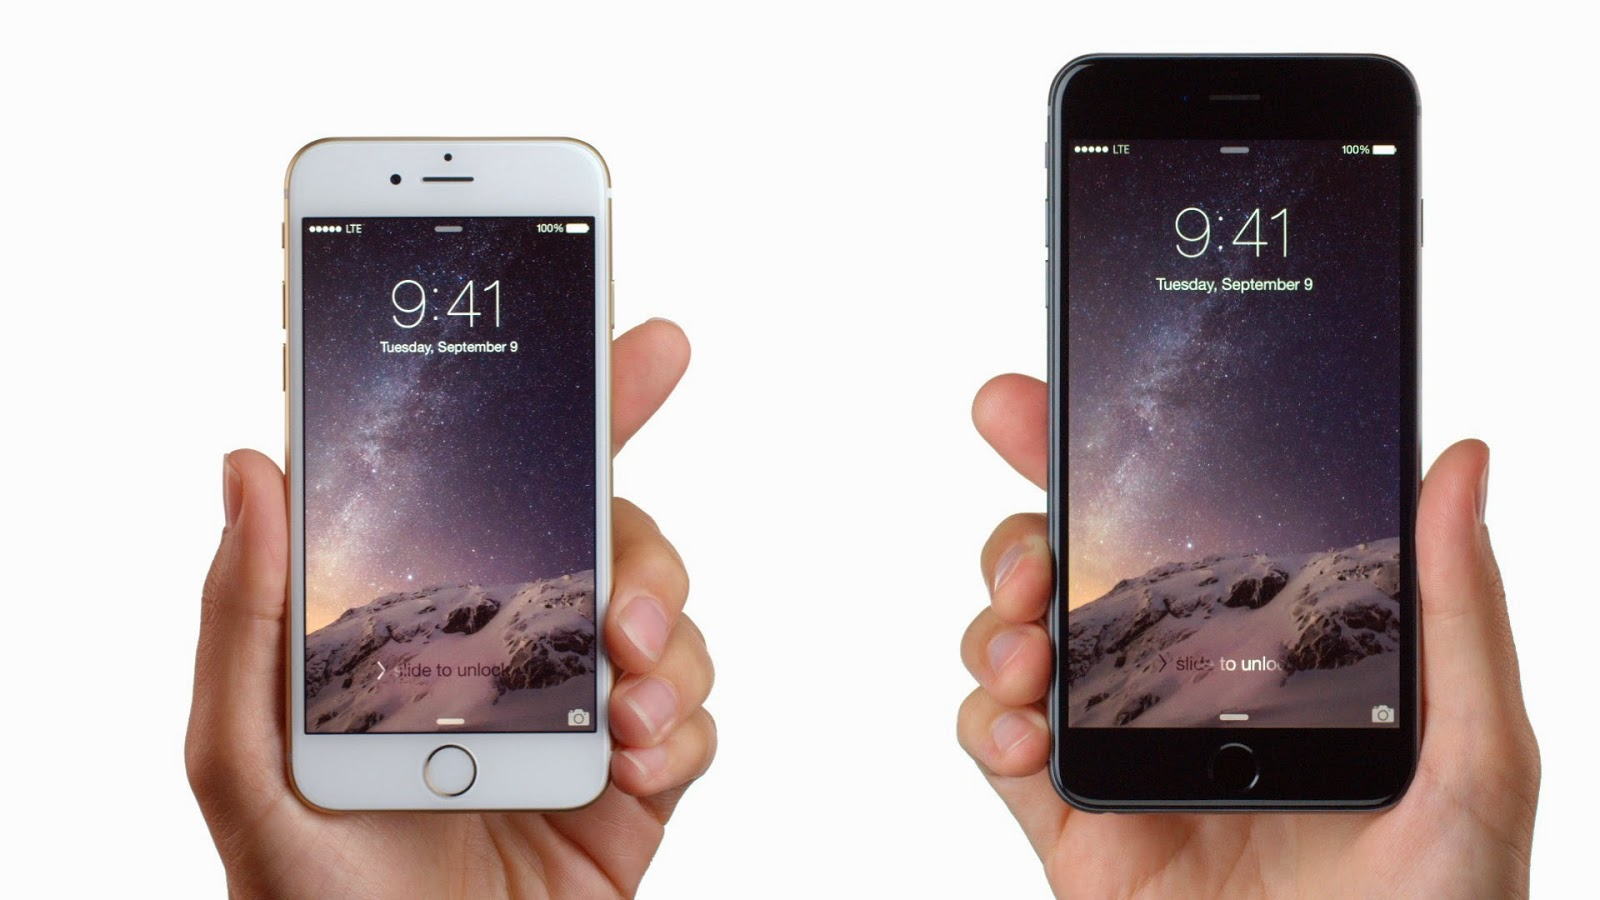 iPhone 6 Review An Honest Perspective